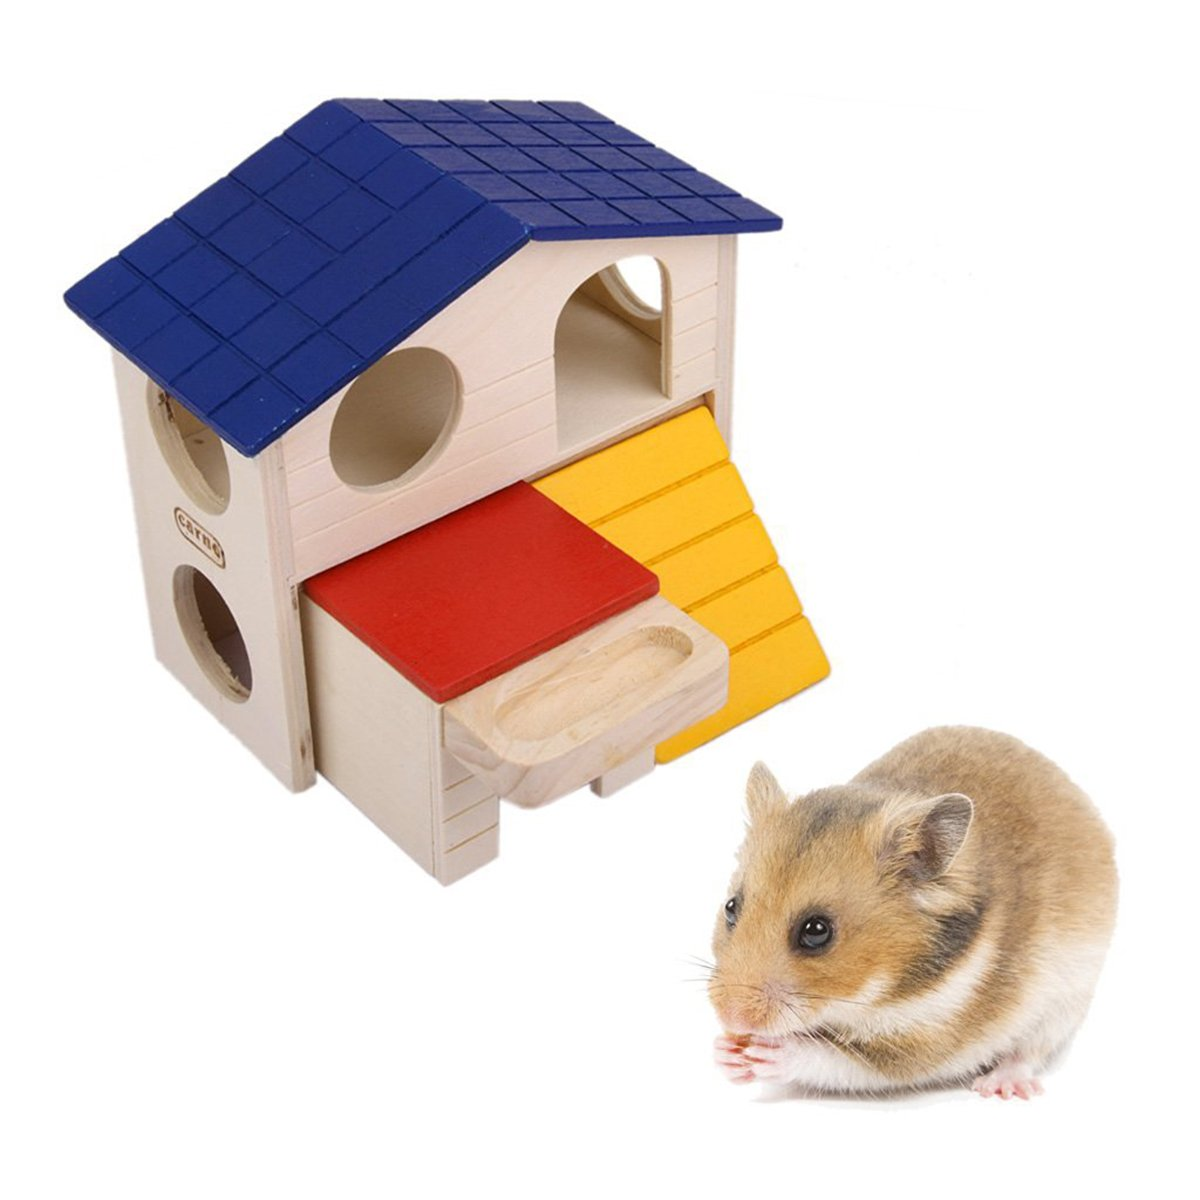 Fenical Hamster Mouse Gerbil House Habitat Small Animal Hideout Hut